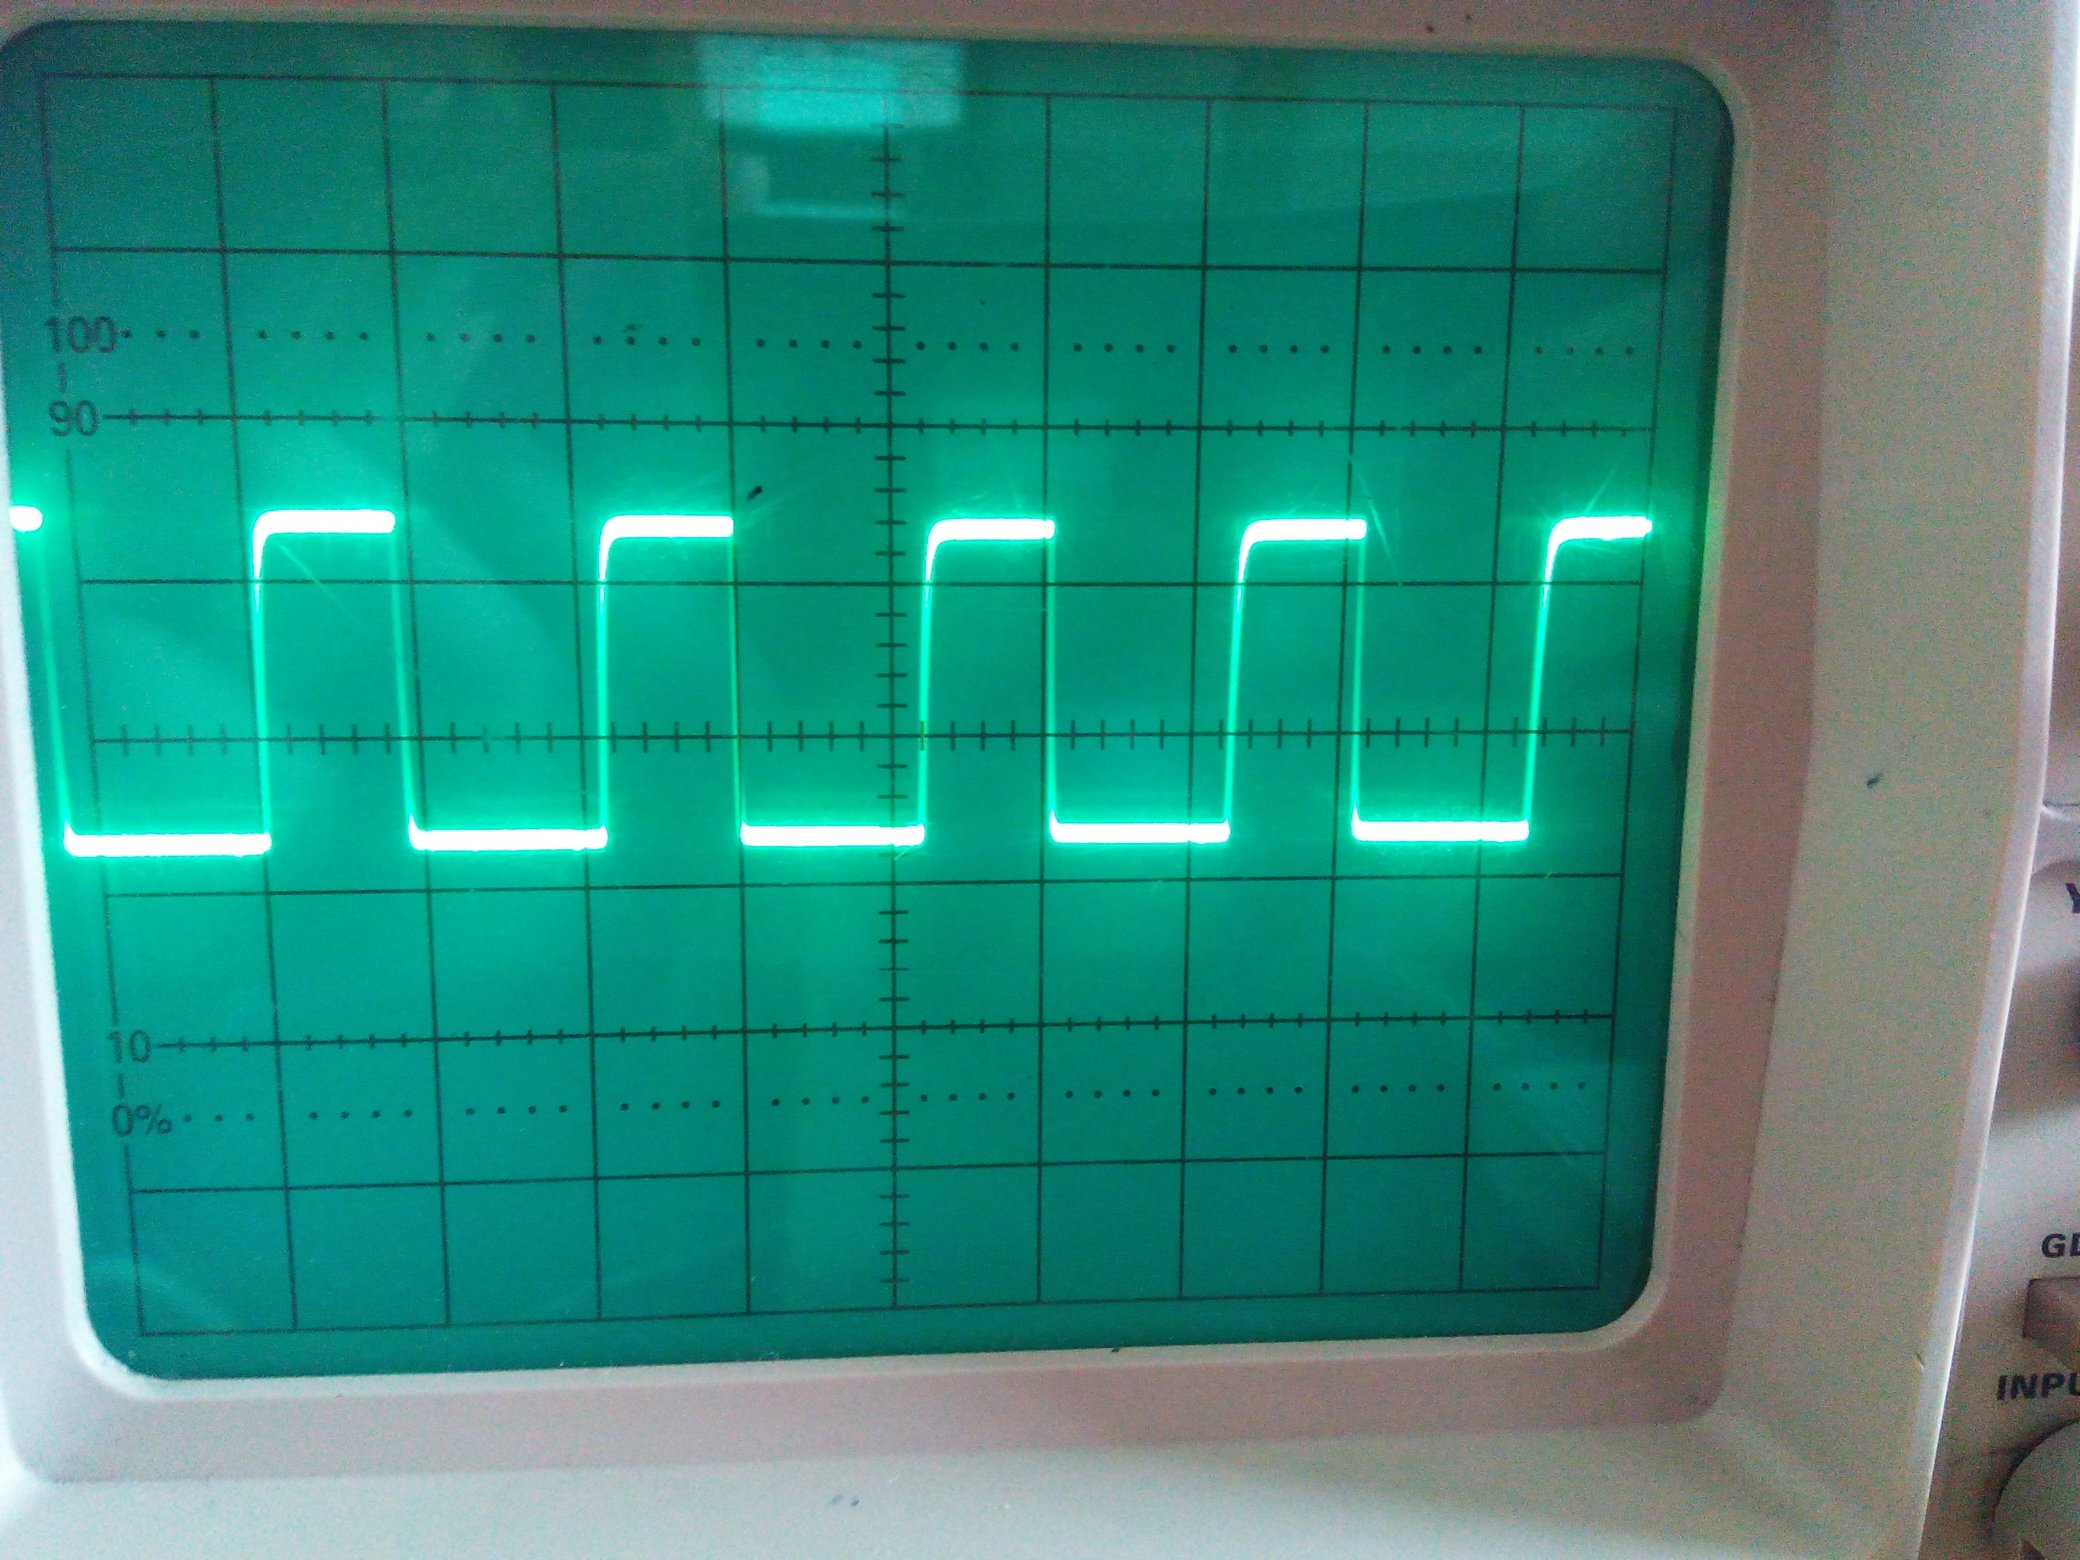 Current Source Circuit 3 10 From 92 Votes Current Source Circuit 4 10